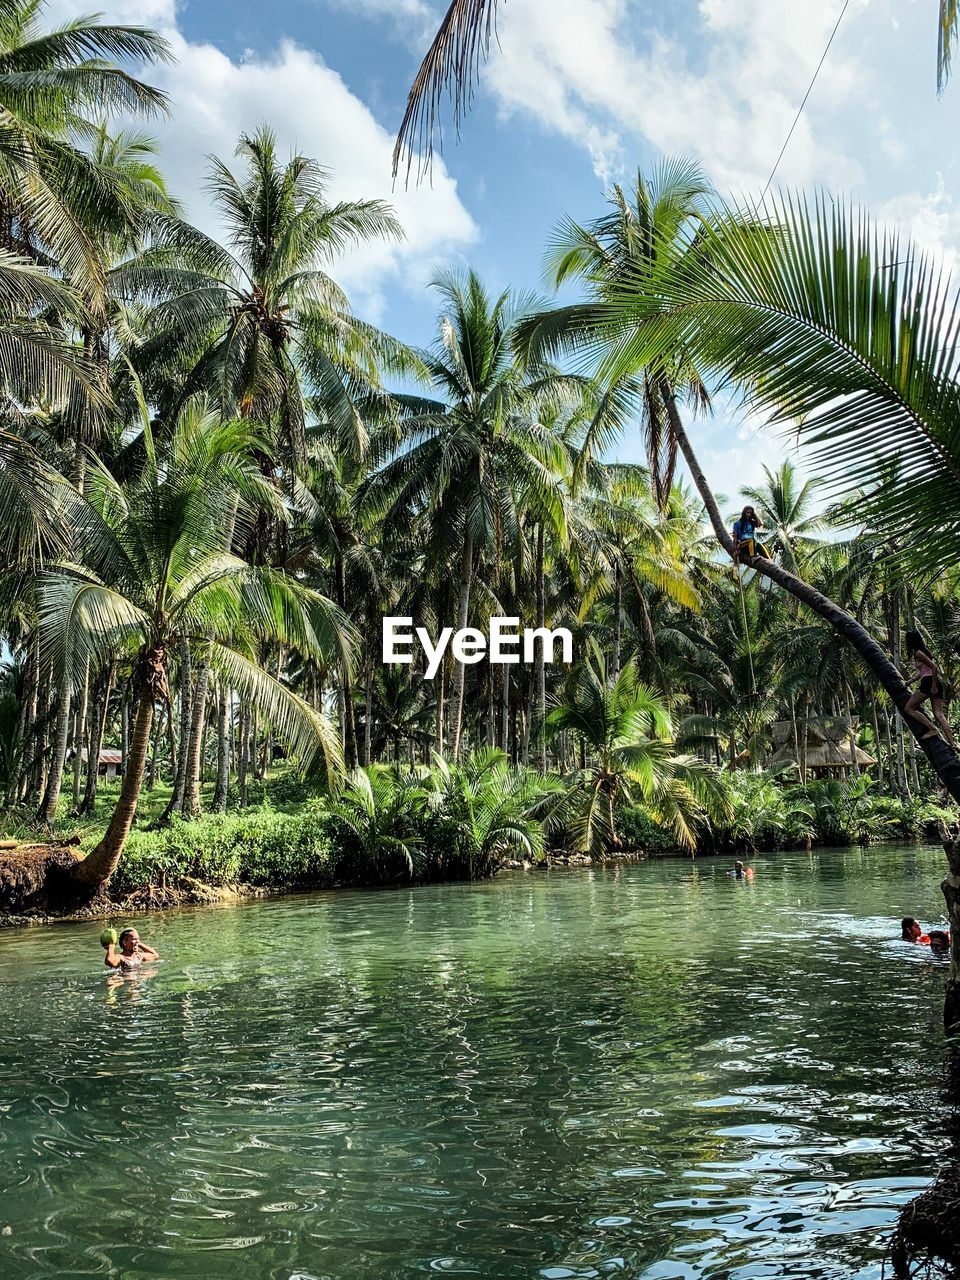 water, tree, palm tree, tropical climate, beauty in nature, waterfront, sky, plant, scenics - nature, nature, tranquility, tranquil scene, growth, day, sea, land, cloud - sky, non-urban scene, outdoors, coconut palm tree, tropical tree